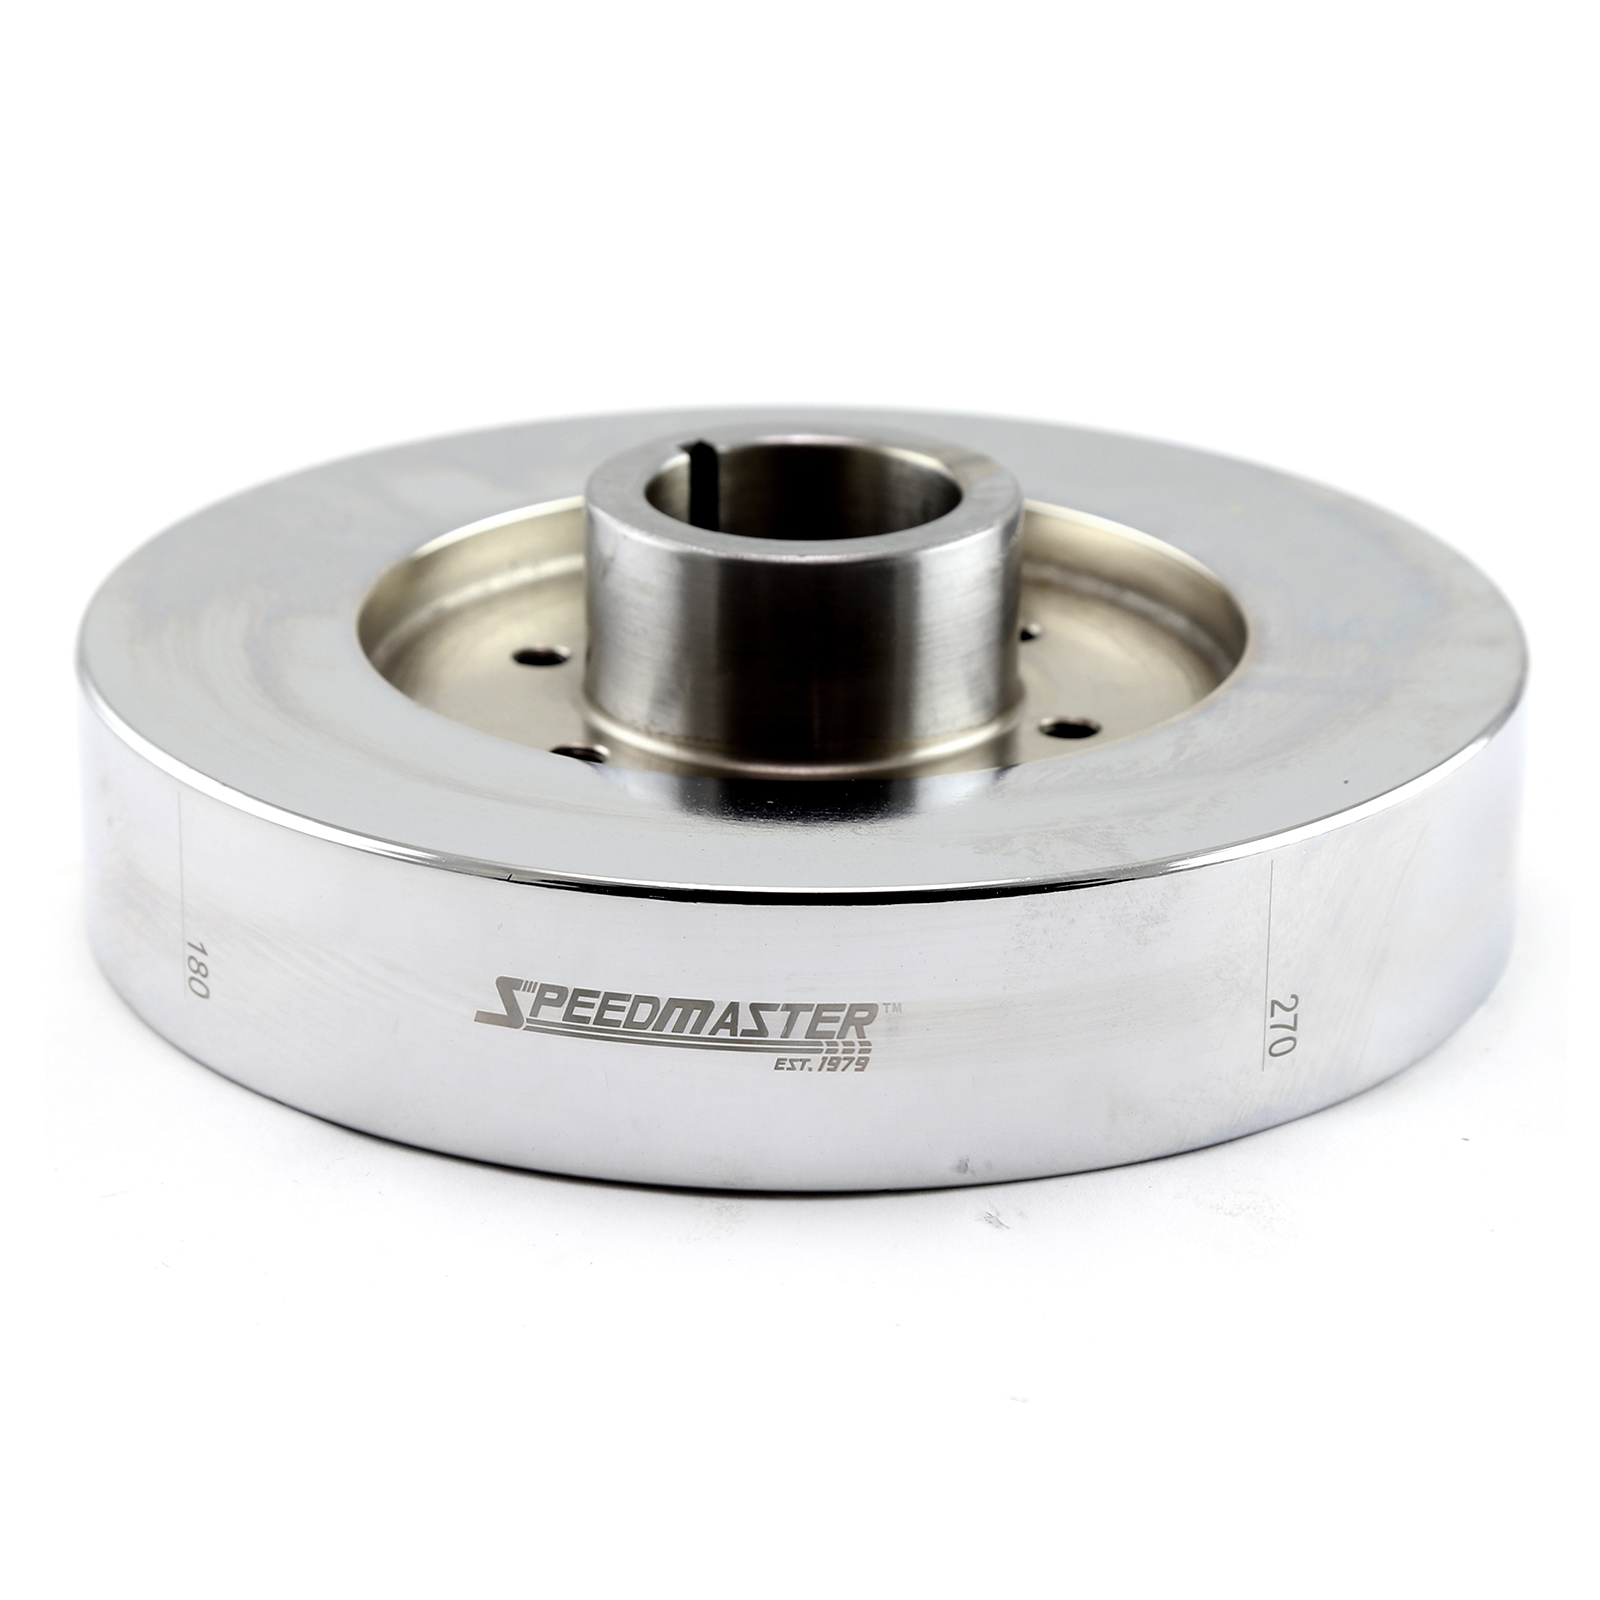 "Ford BBF 429 460 7.25"" Internal SFI Fluid Harmonic Balancer Damper Chrome"